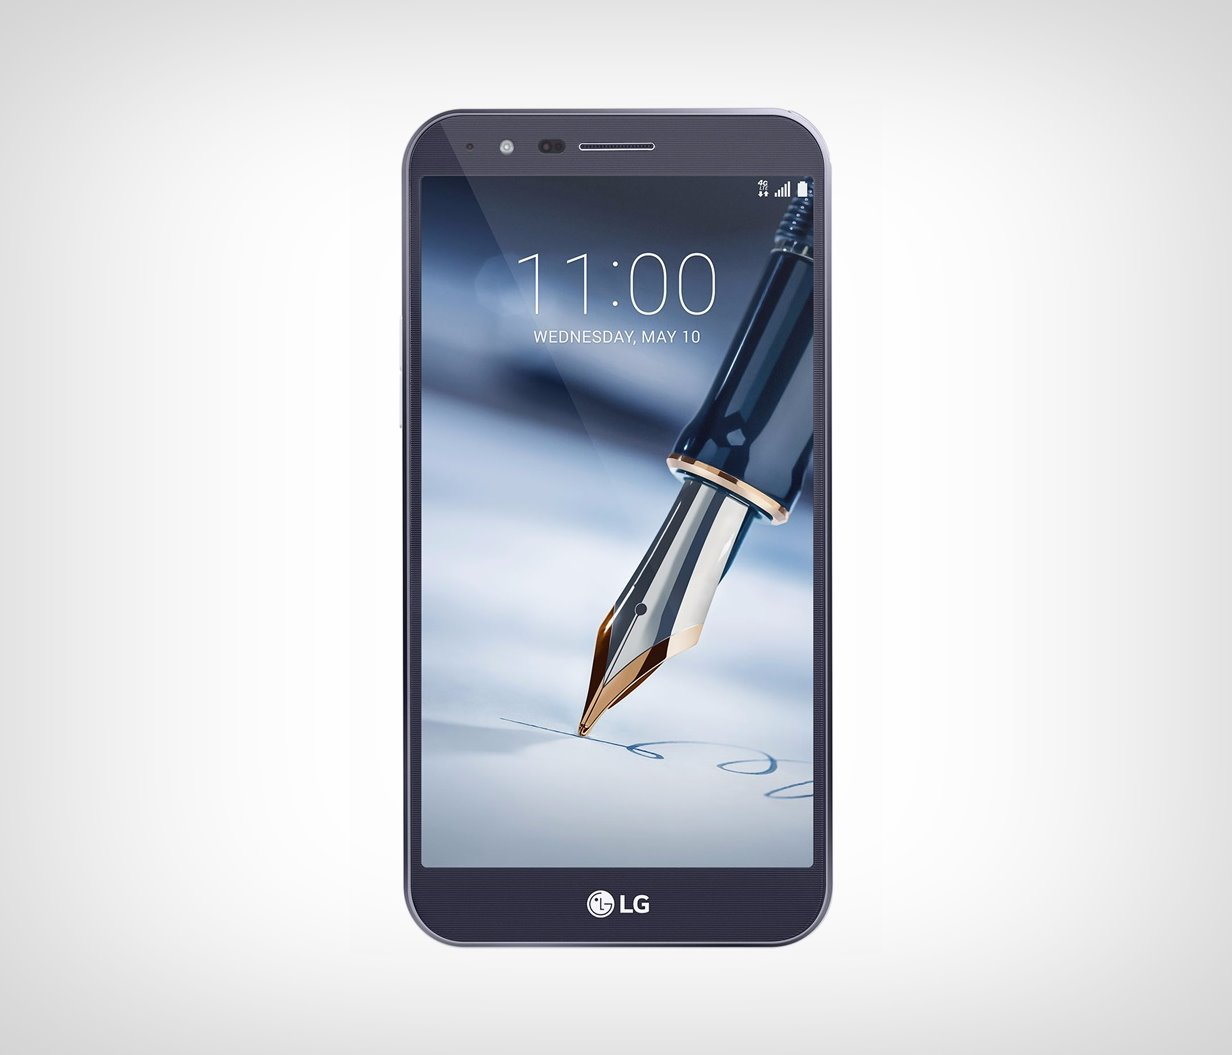 t mobile launches lg stylo 3 plus features include 5 7 inch display 2gb ram and 3080mah battery. Black Bedroom Furniture Sets. Home Design Ideas